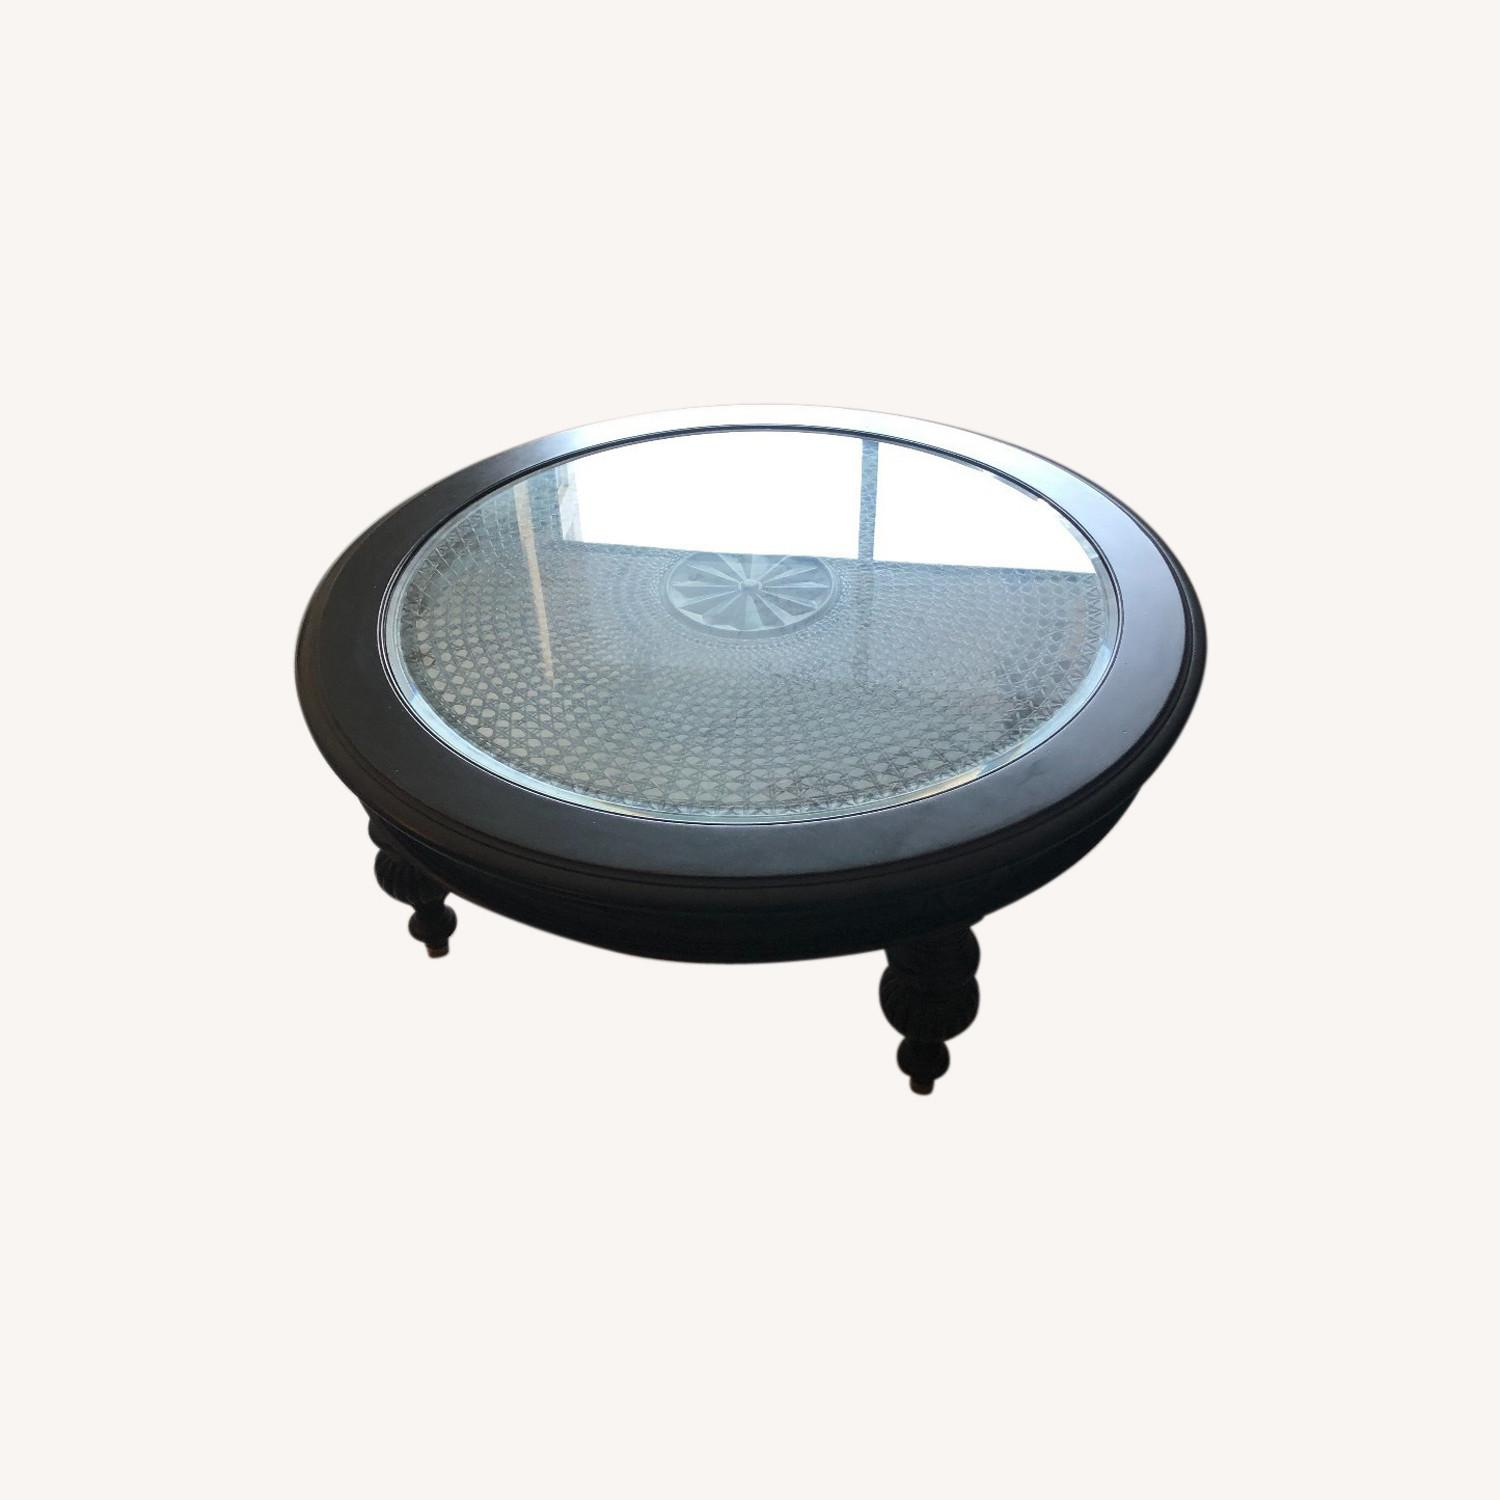 Ethan Allen Maya Round Coffee Table in Peppercorn - image-0